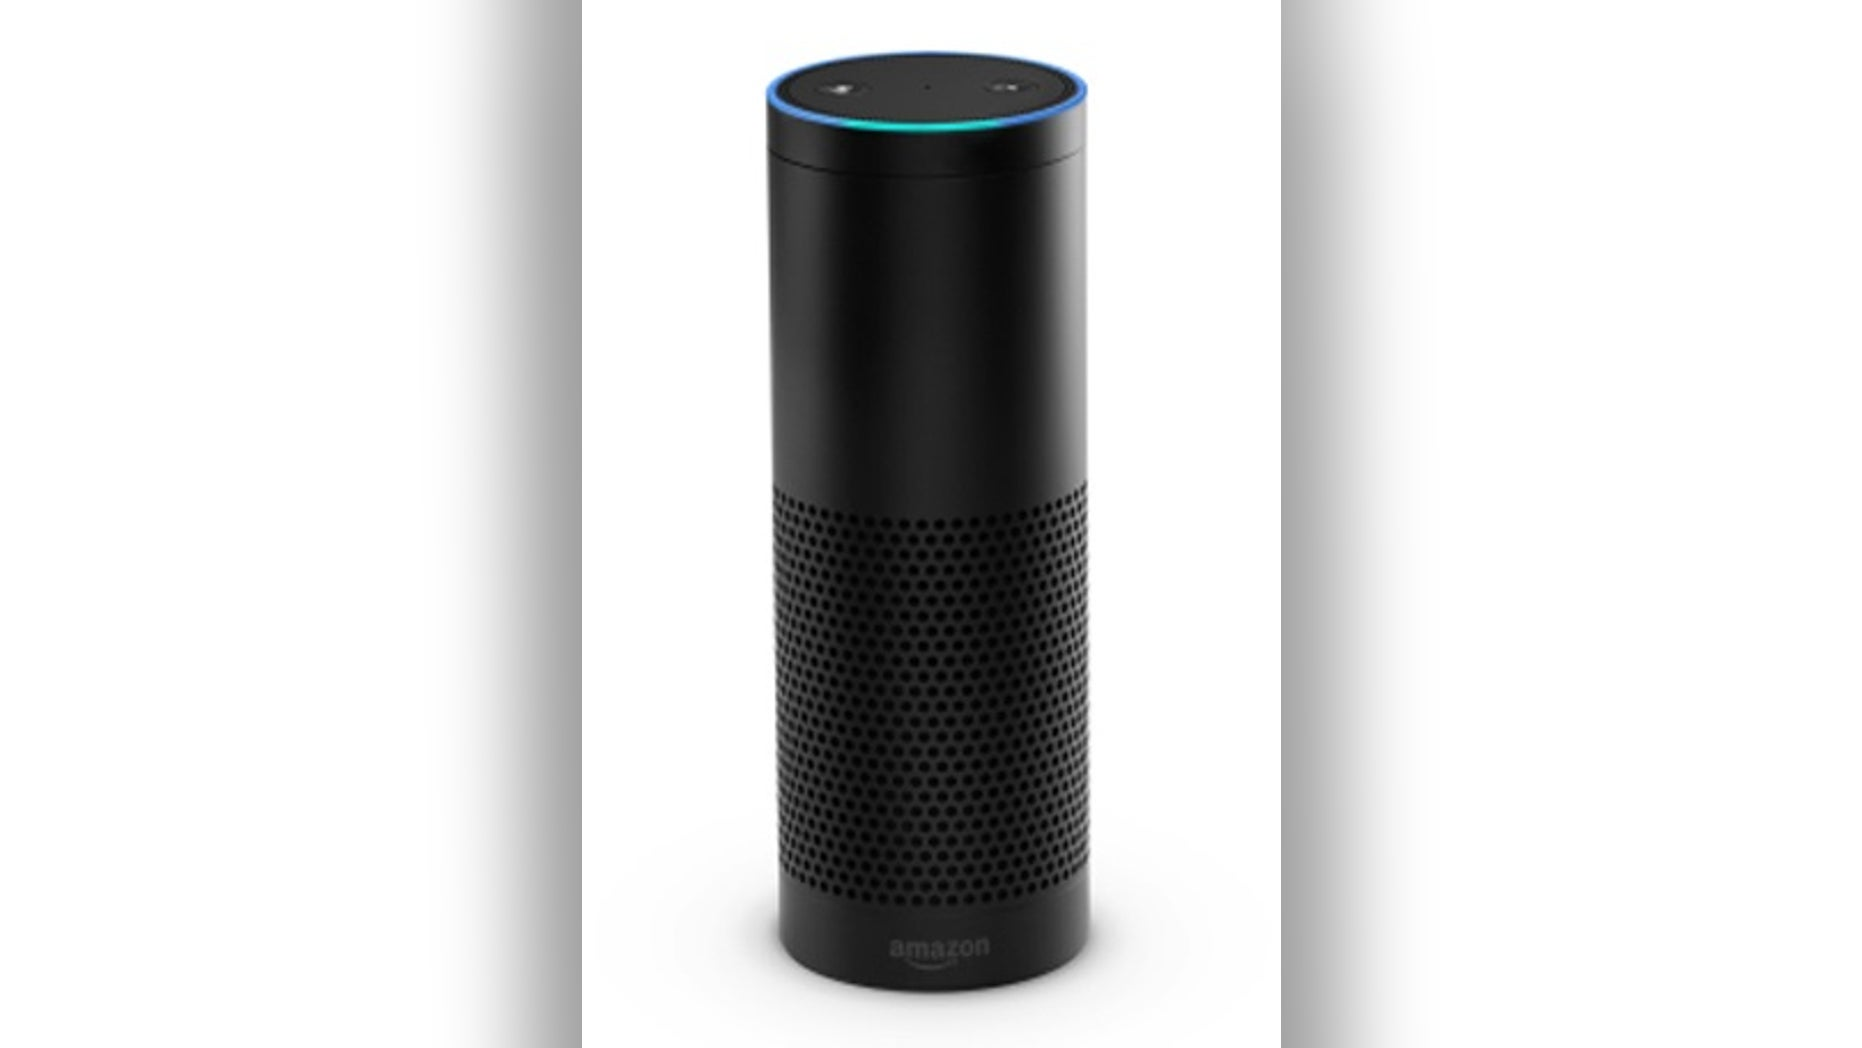 Amazon Echo can make your life easier.